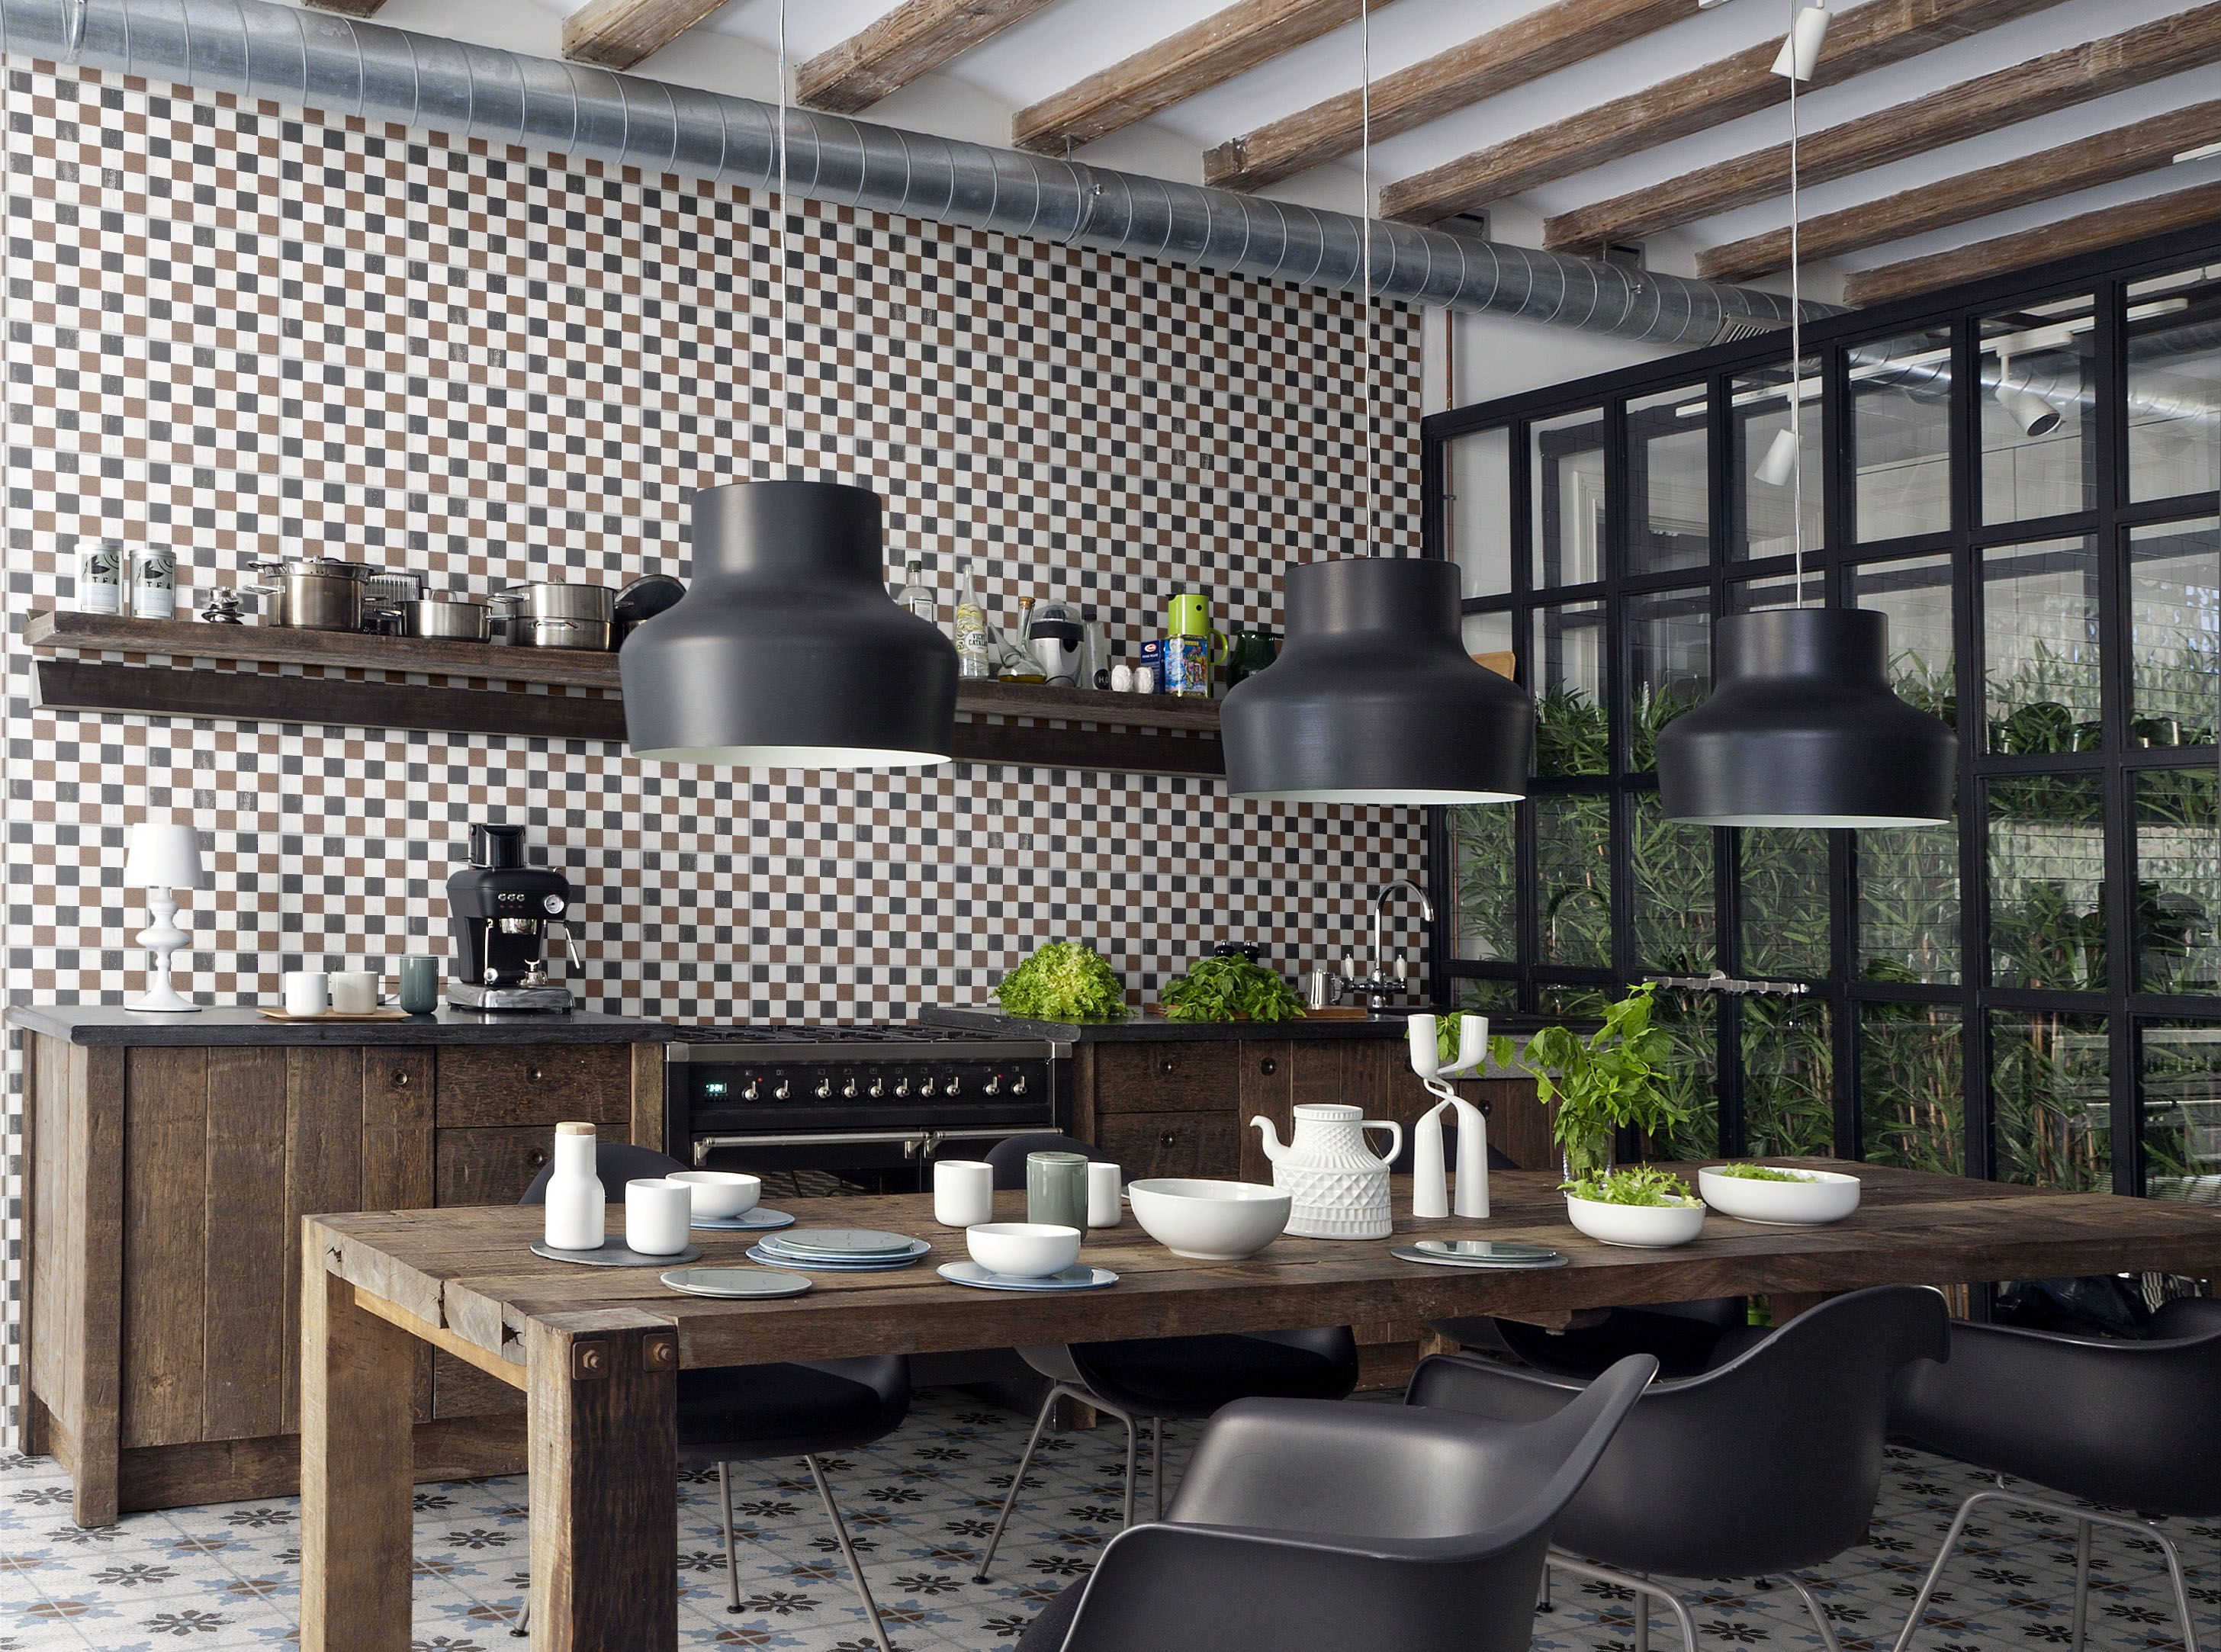 Decoration Modern Industrial Kitchen Cemetine Porcelain Tile Wall